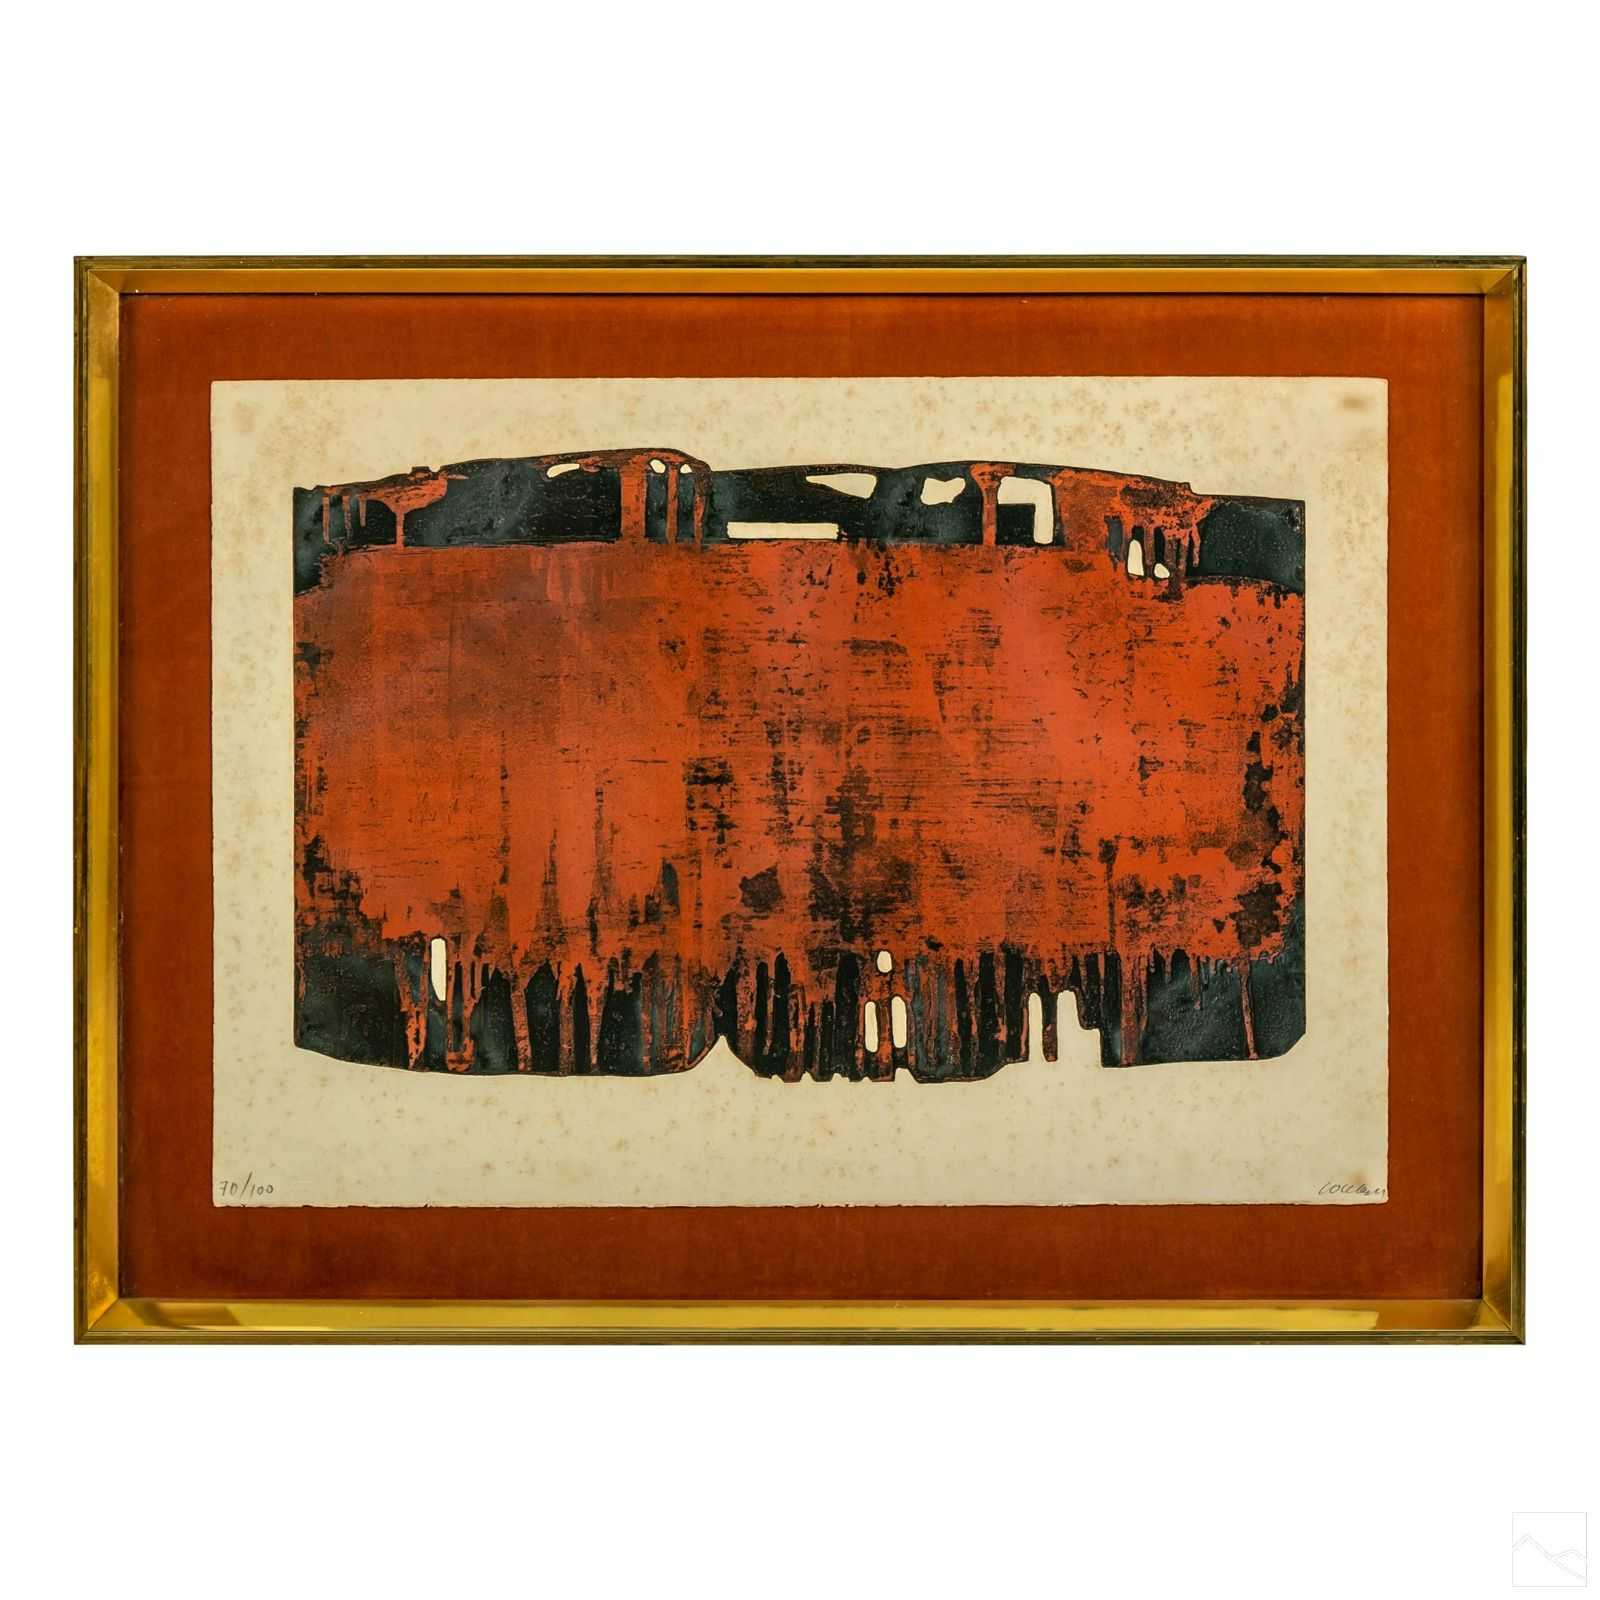 Pierre Soulages (b1919) Eau Forte Abstract Etching